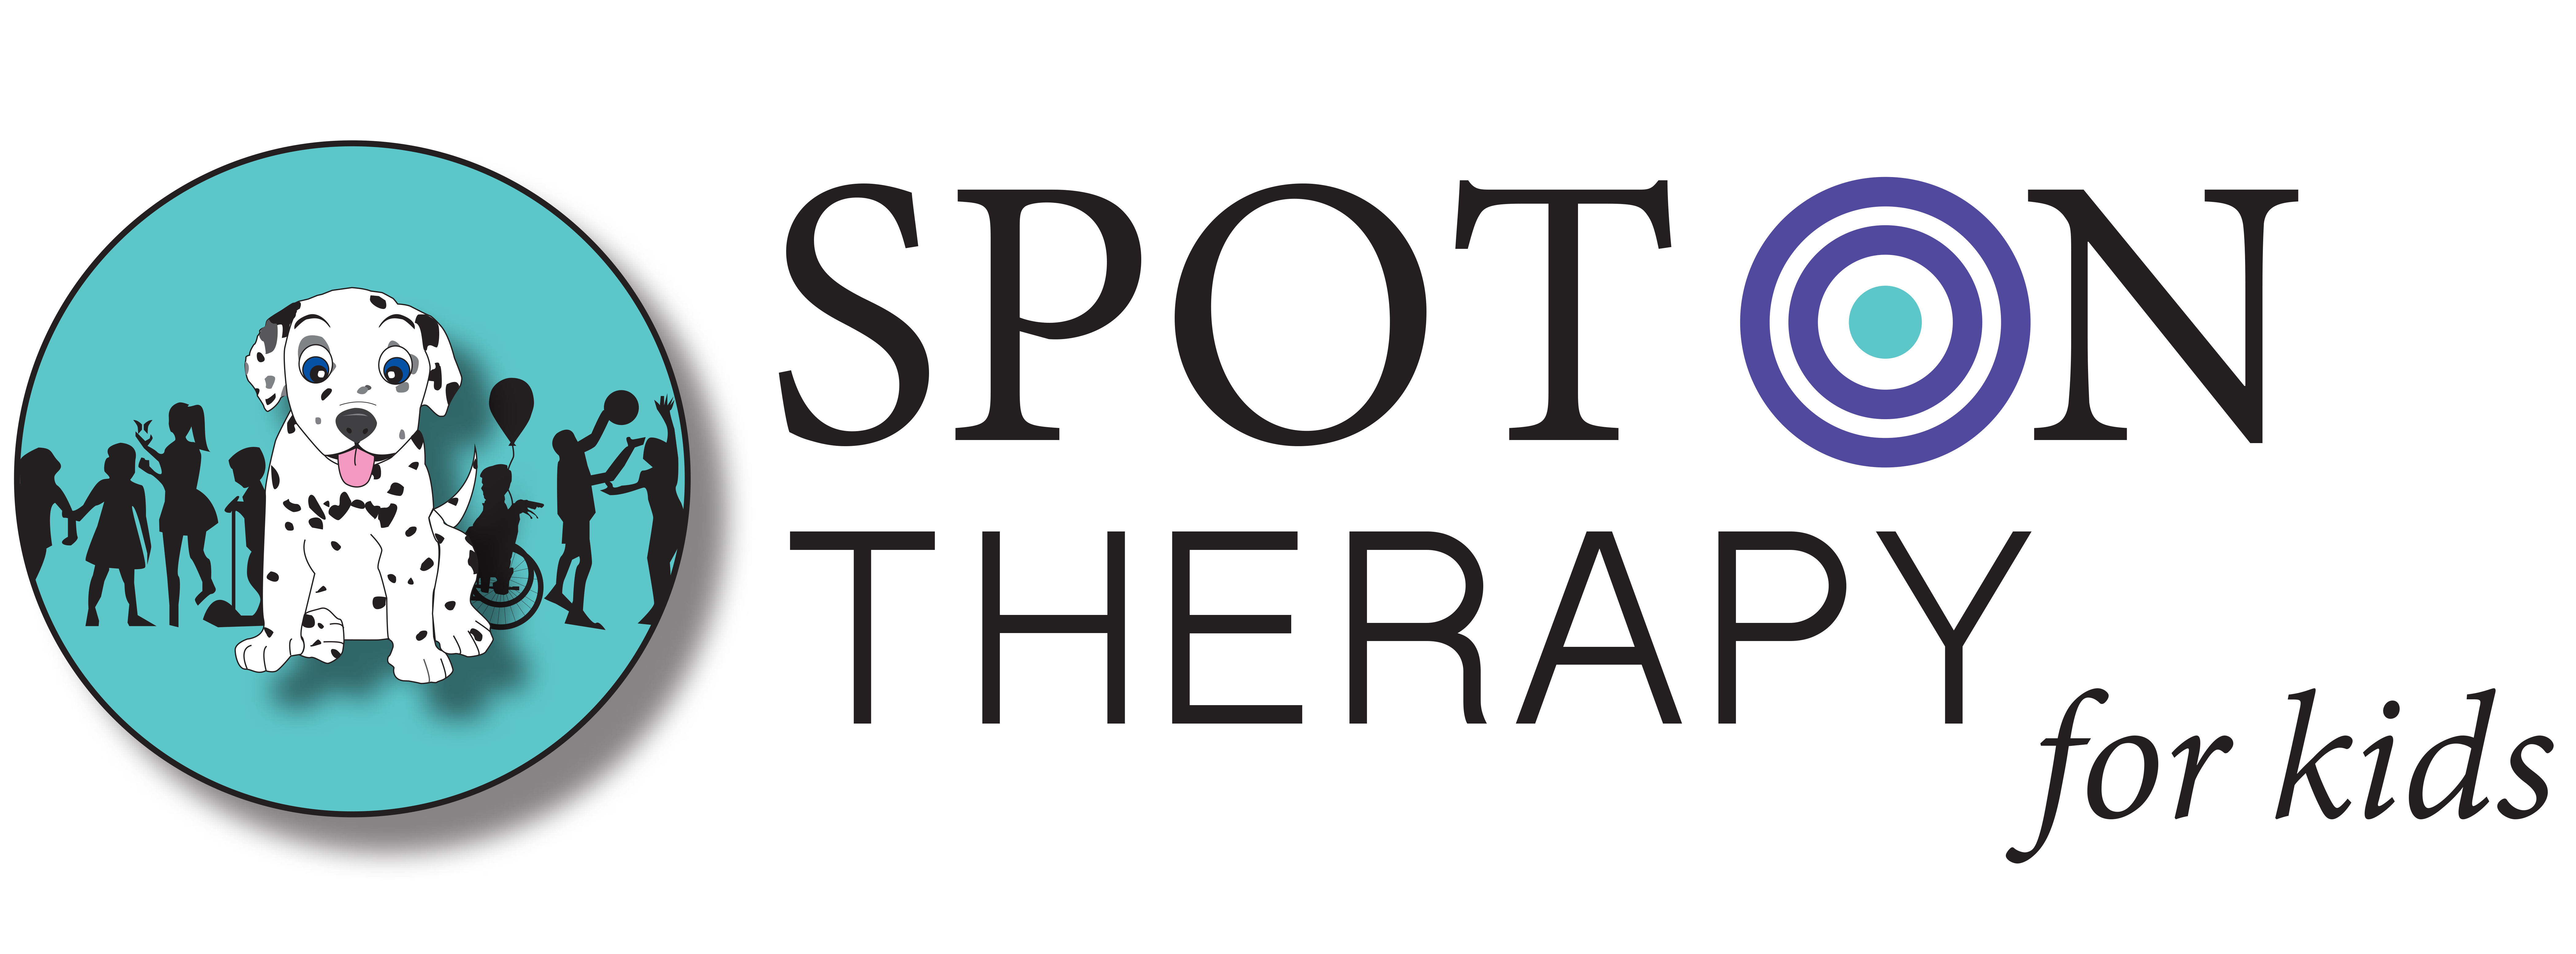 SPOT On Therapy For Kids!